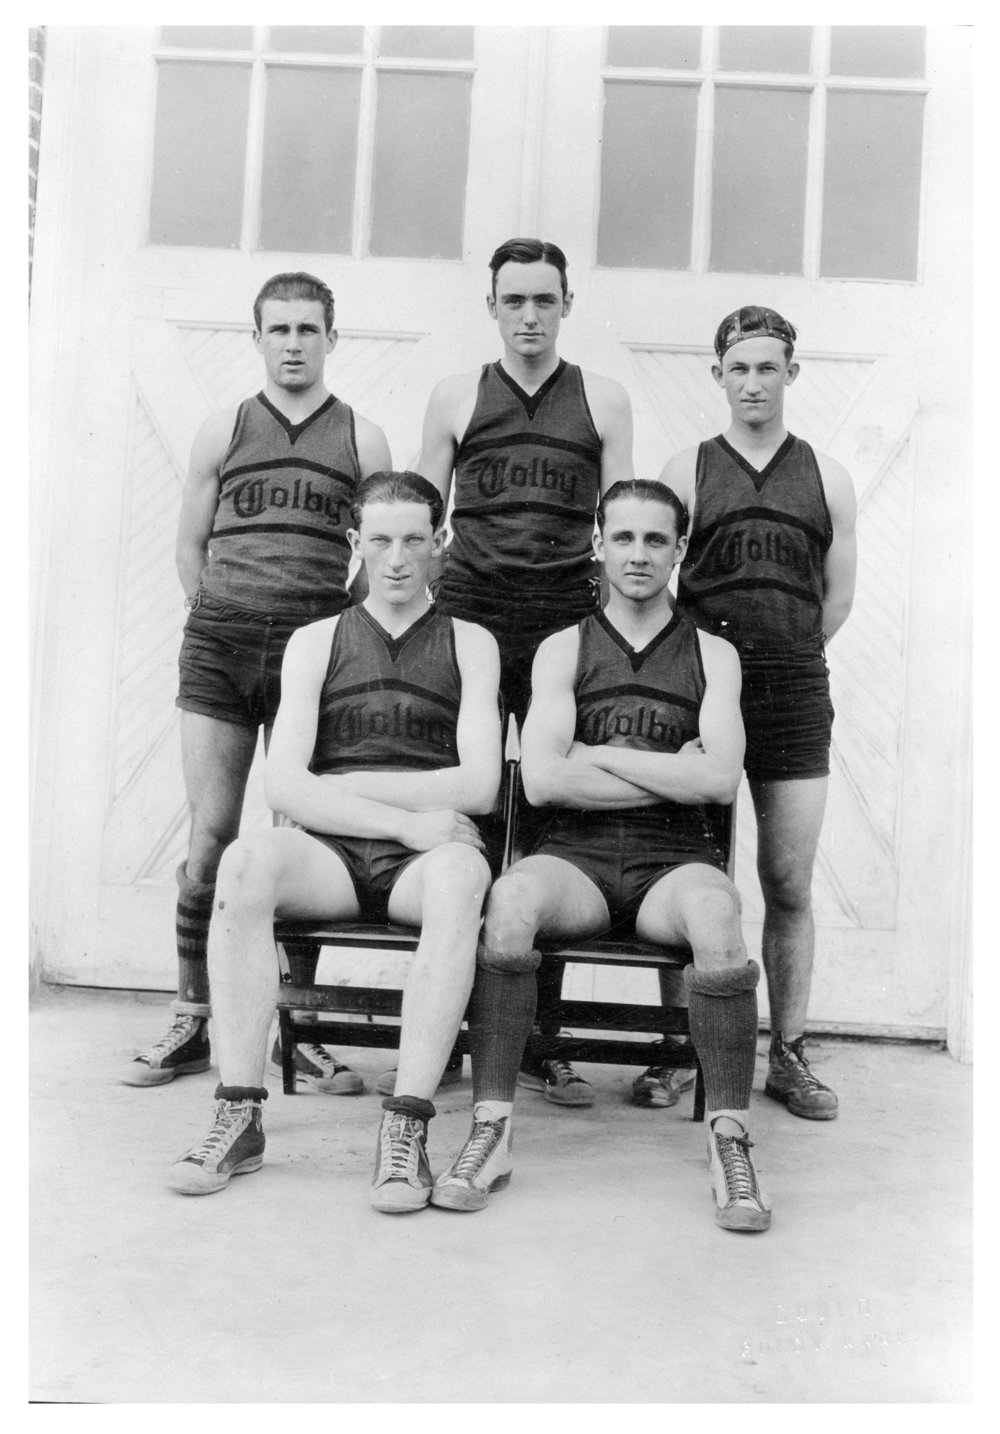 Colby High School men's basketball team, Colby, Thomas County, Kansas